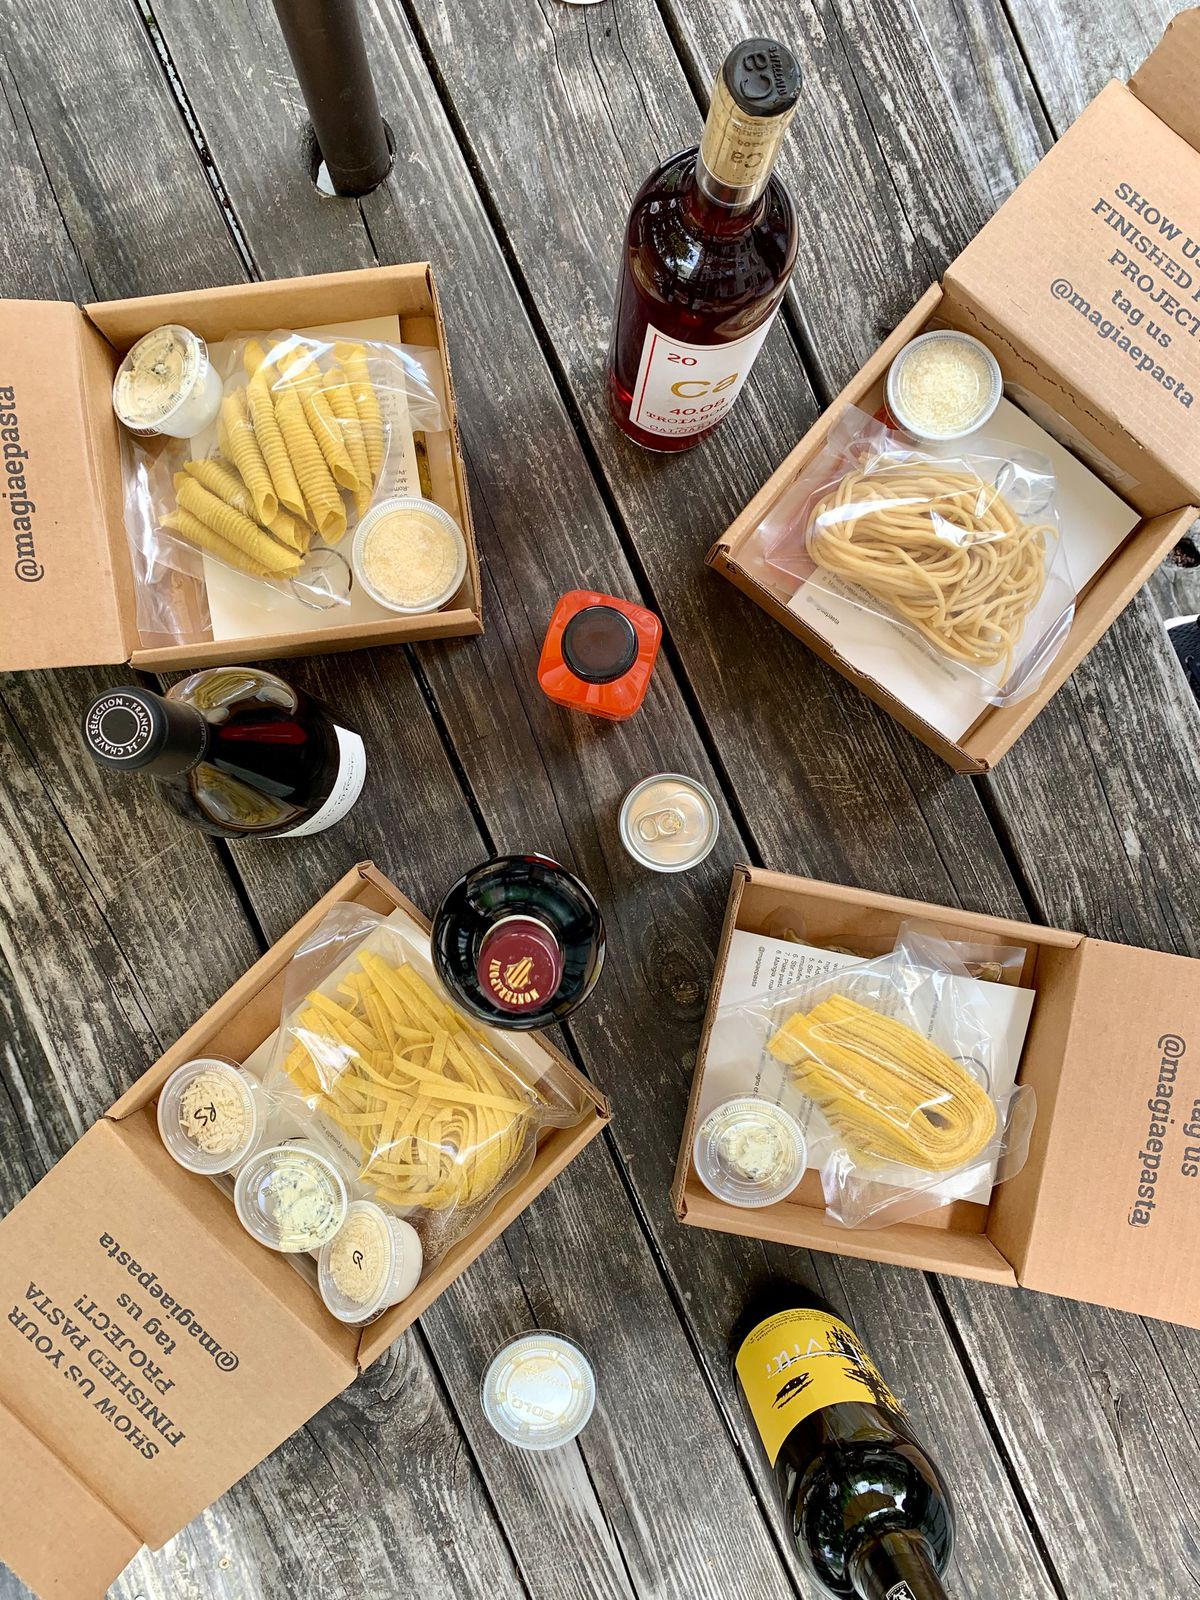 A wooden table with cardboard boxes open to reveal packaged dry pasta alongside bottles of wine